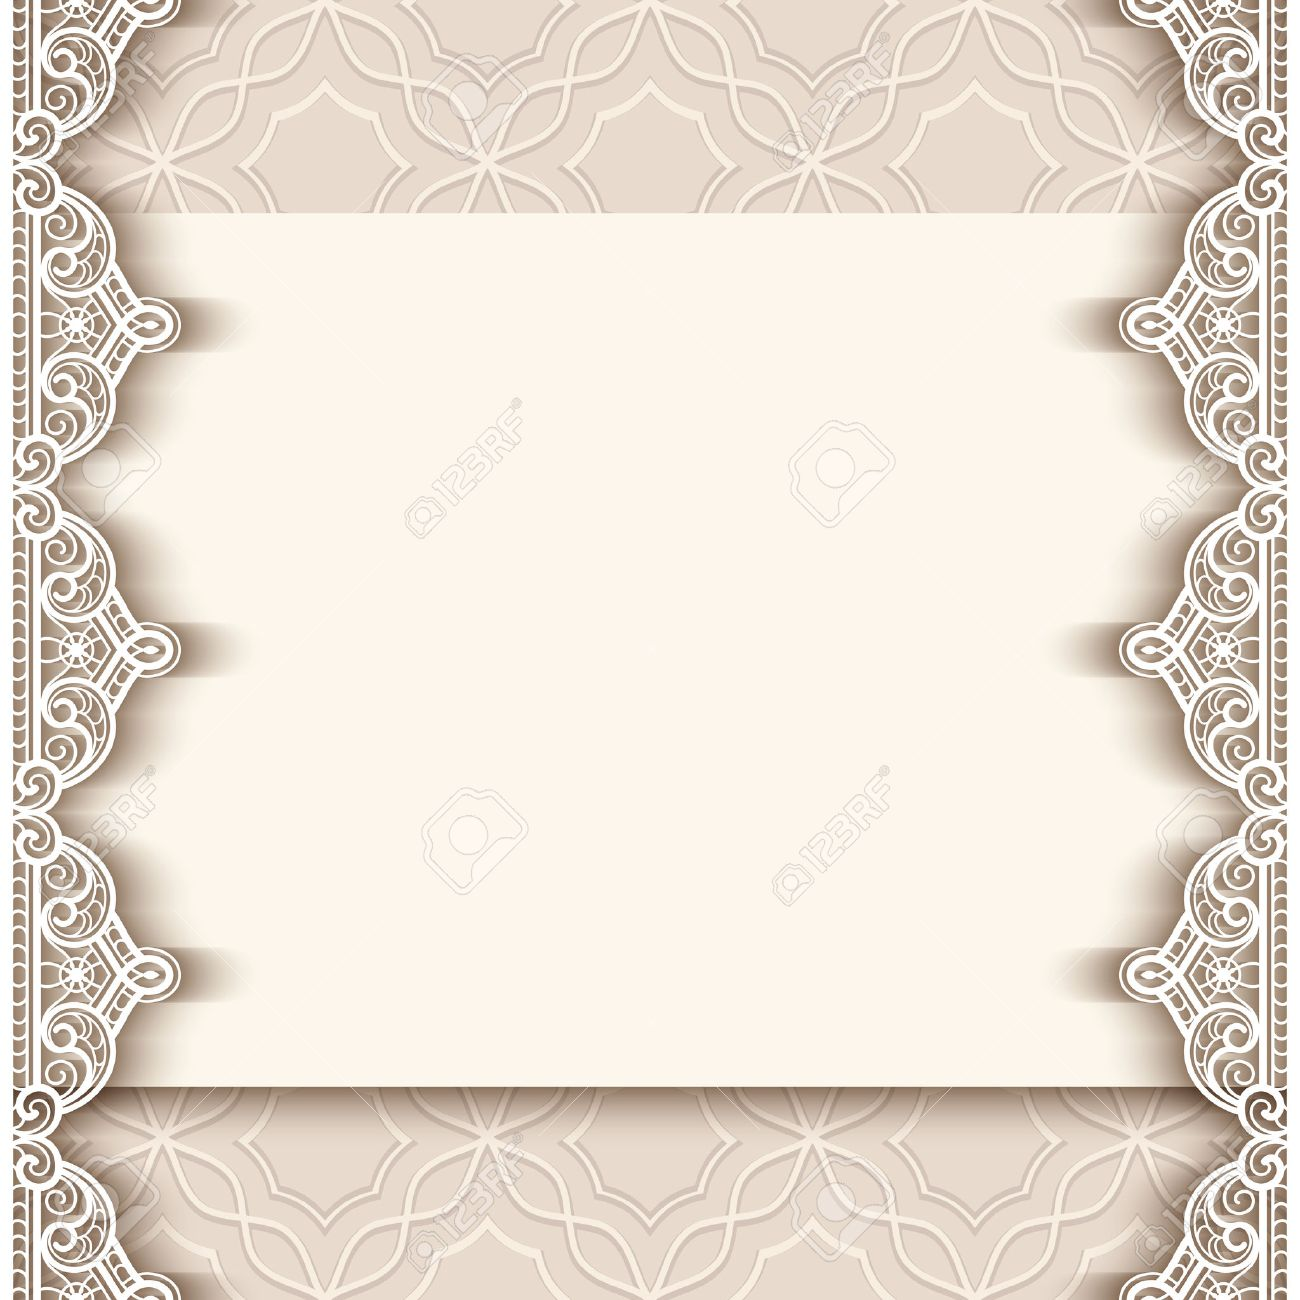 Vintage greeting card with lace border decoration, cutout paper background, wedding invitation or announcement template, vector illustration - 48108783